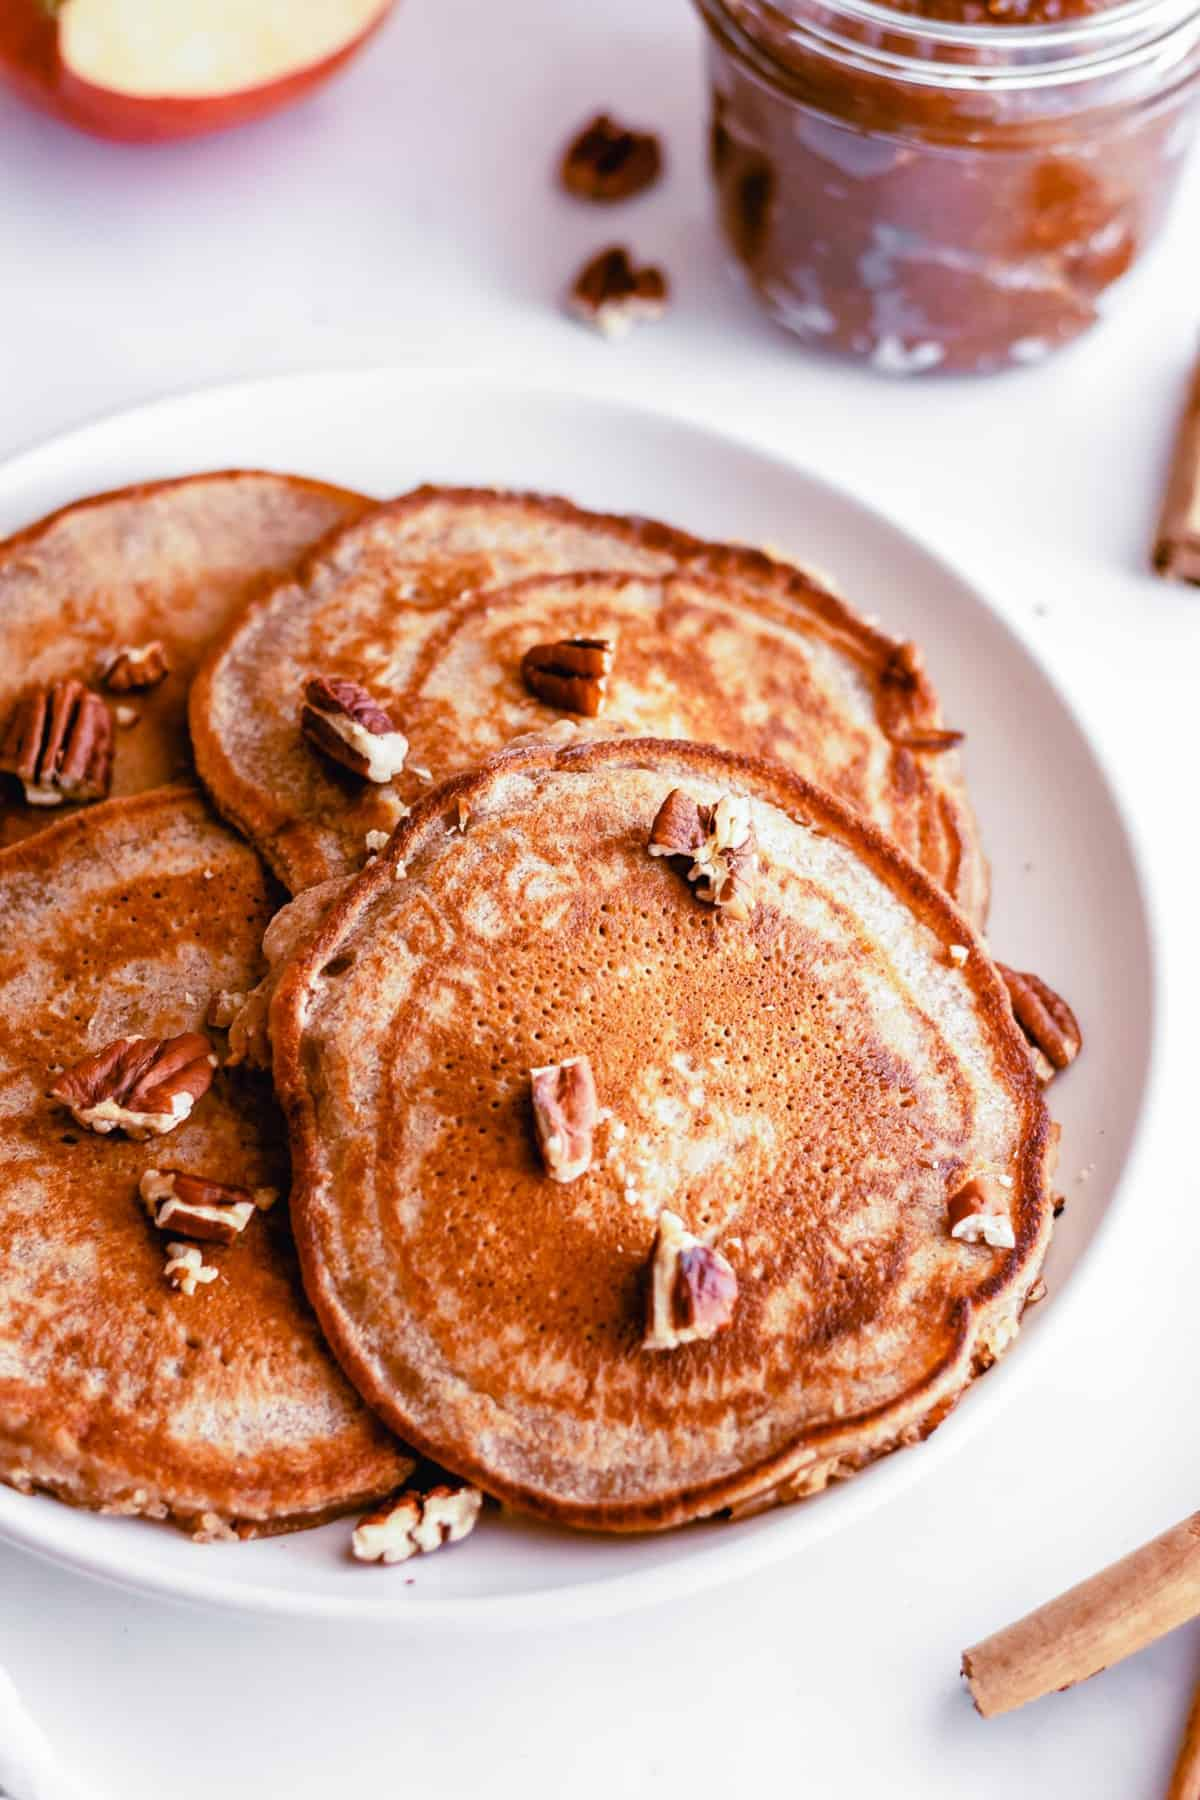 Pile of pancakes on a plate topped with pecans.